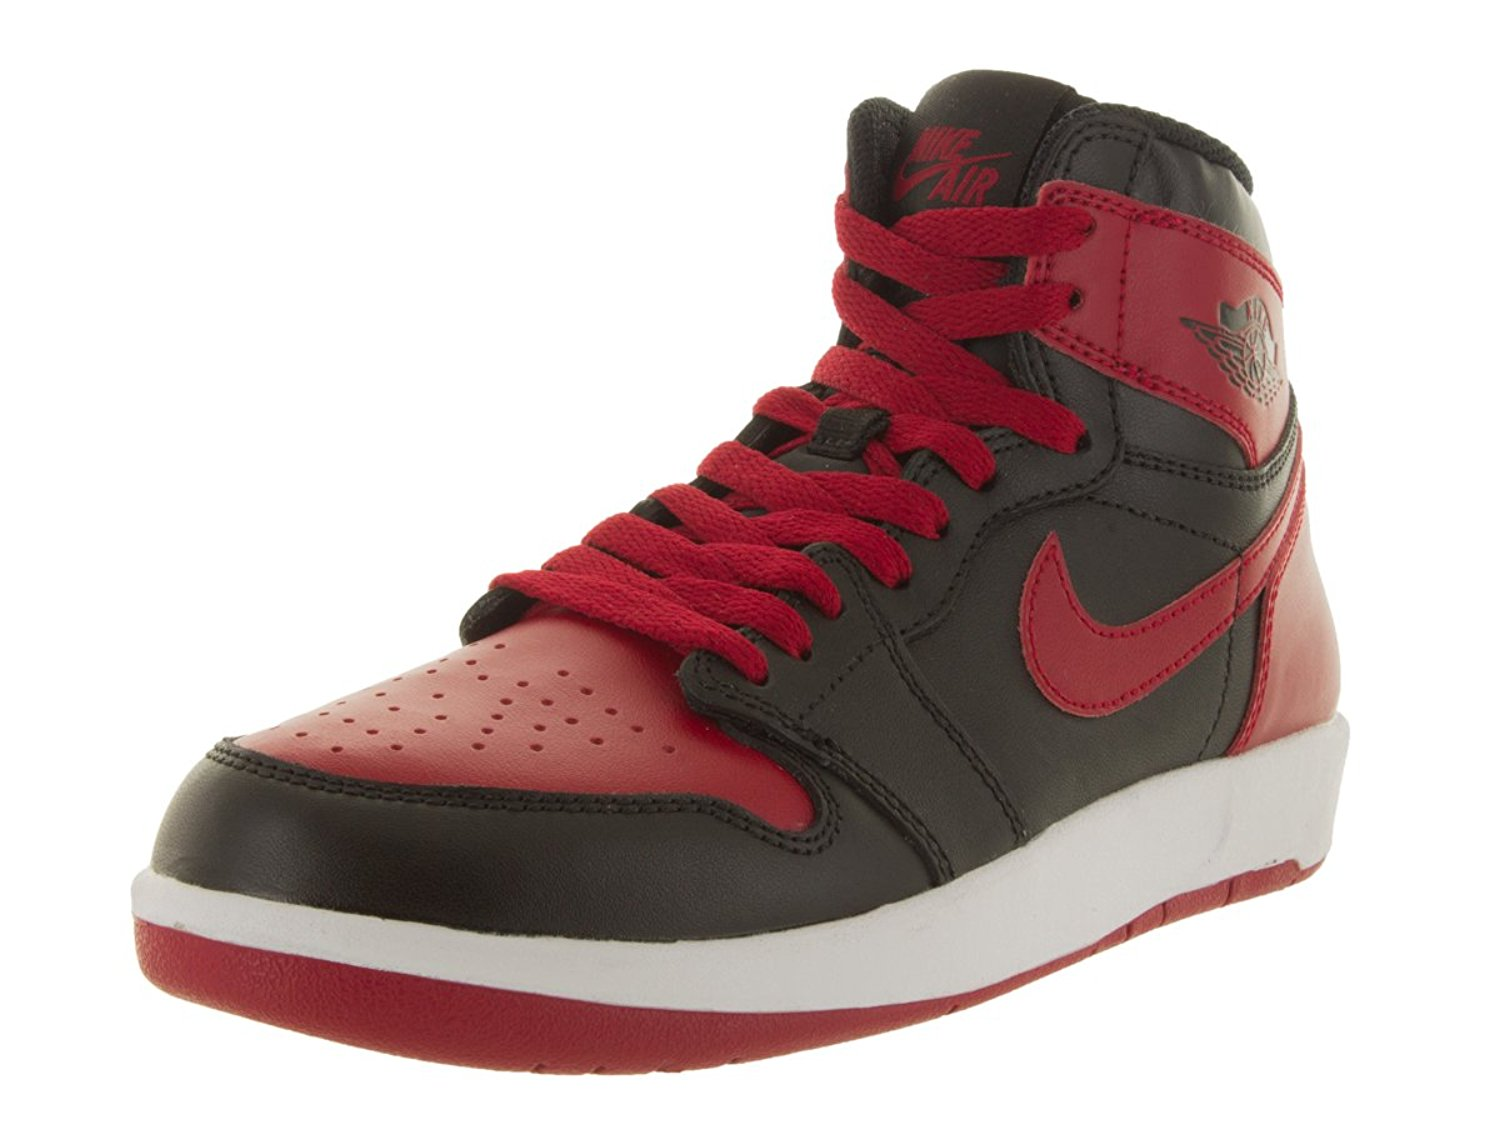 89e220d7f Get Quotations · Nike Jordan Kids Air Jordan 1 Hi The Return Bg Basketball  Shoe